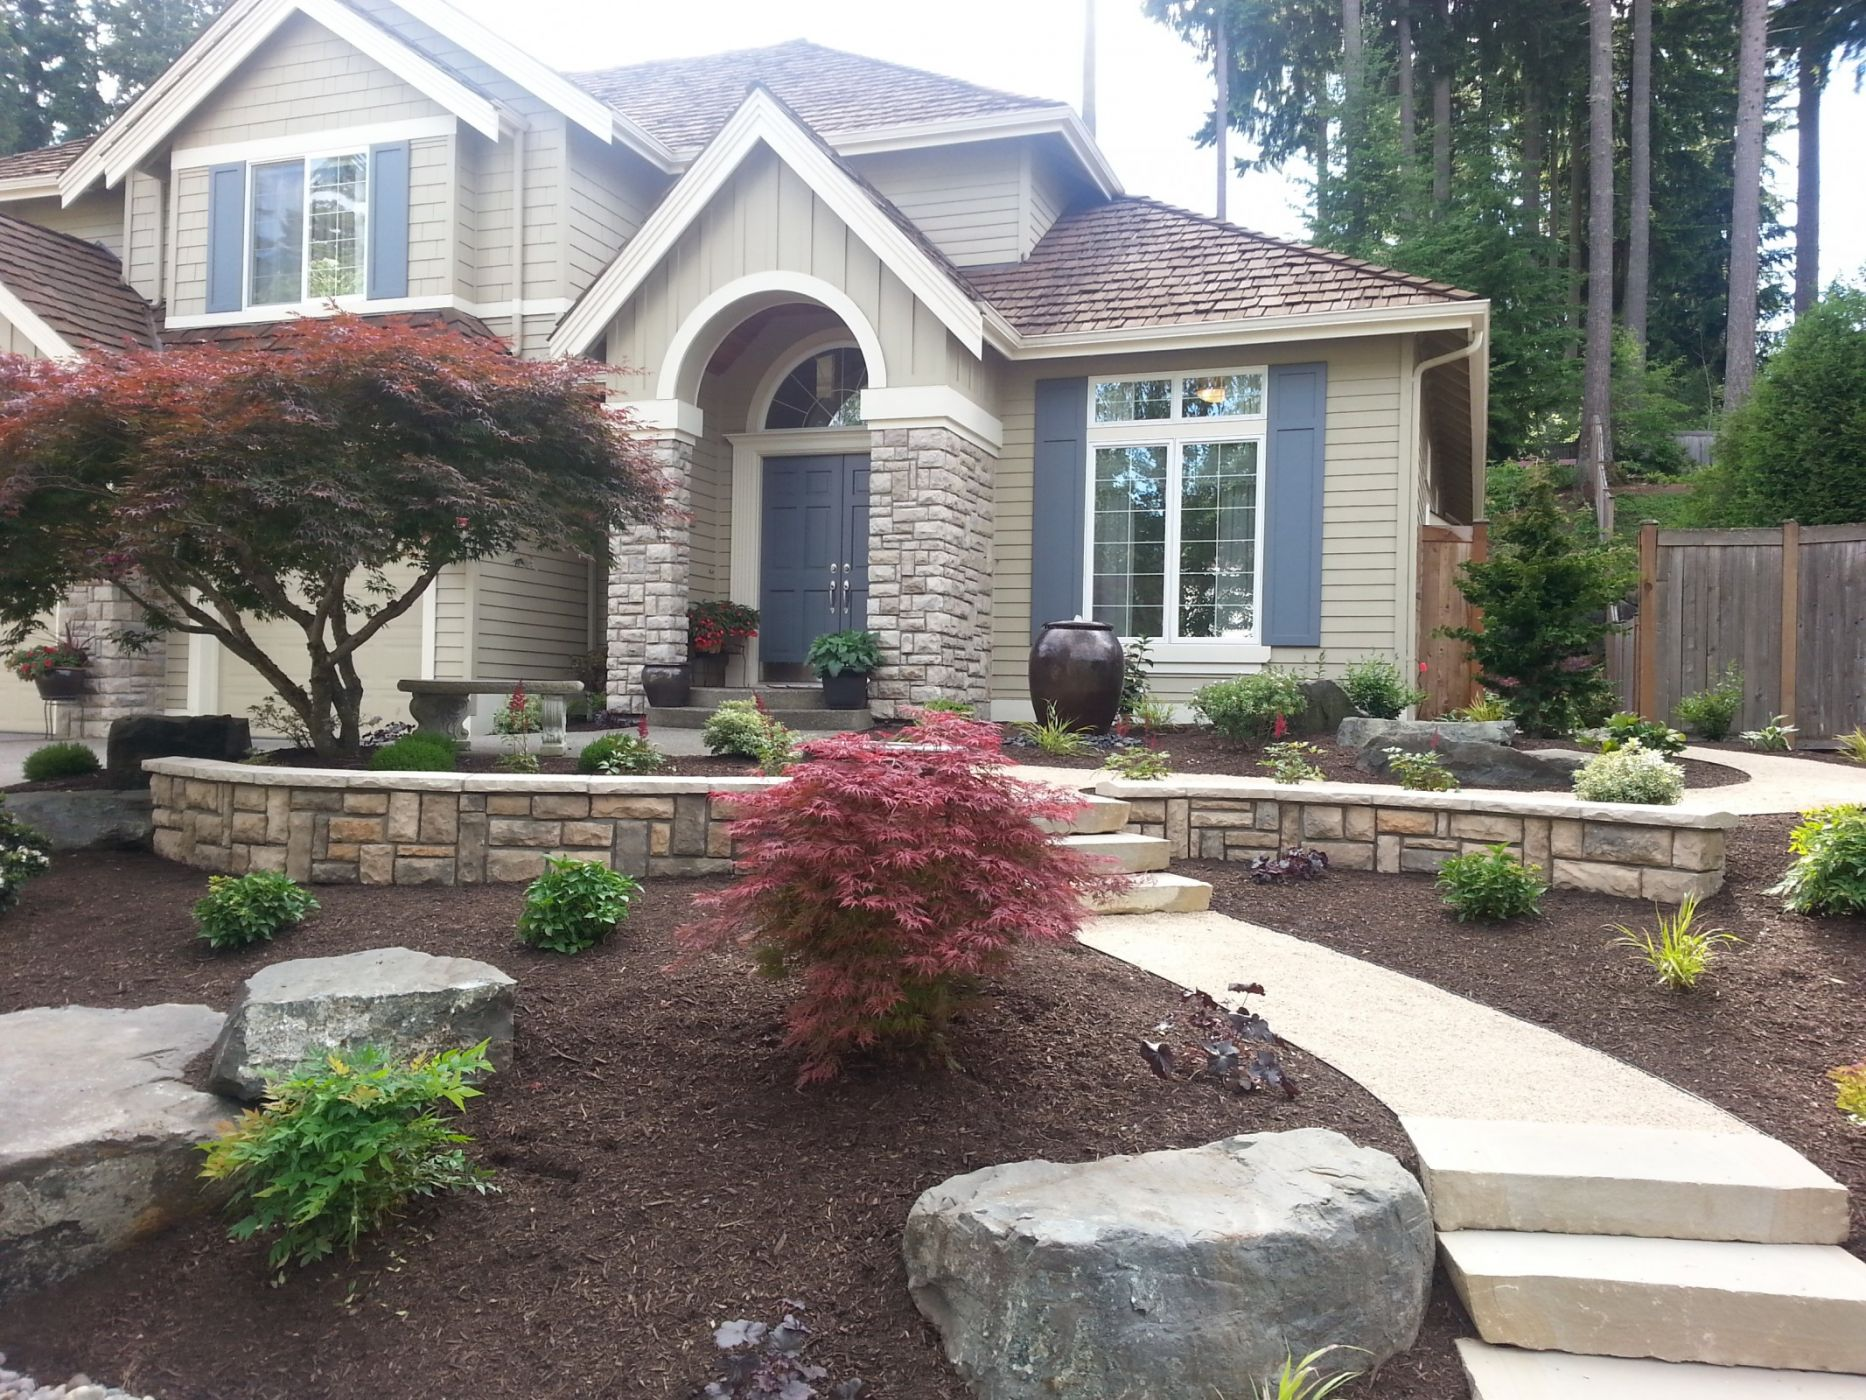 Janika landscaping ideas front yard illinois here for The best front yard landscaping